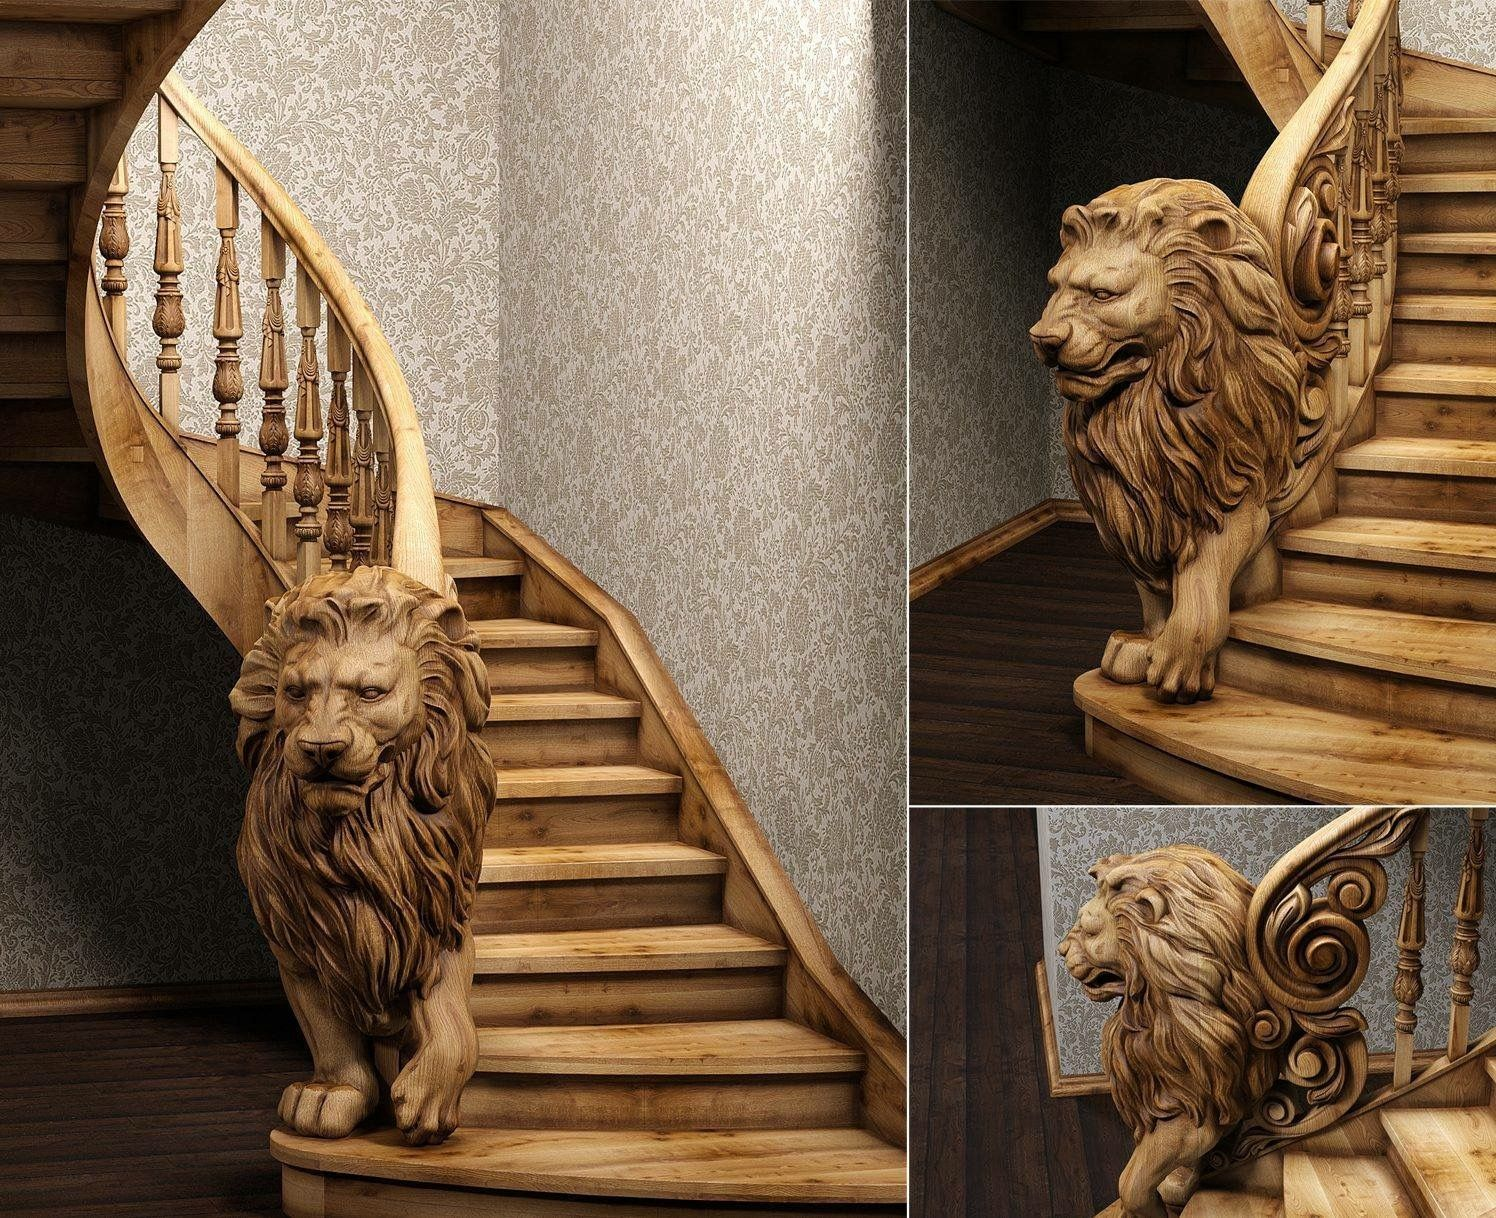 When i win the lottery i will hire a wood carver to do a similar